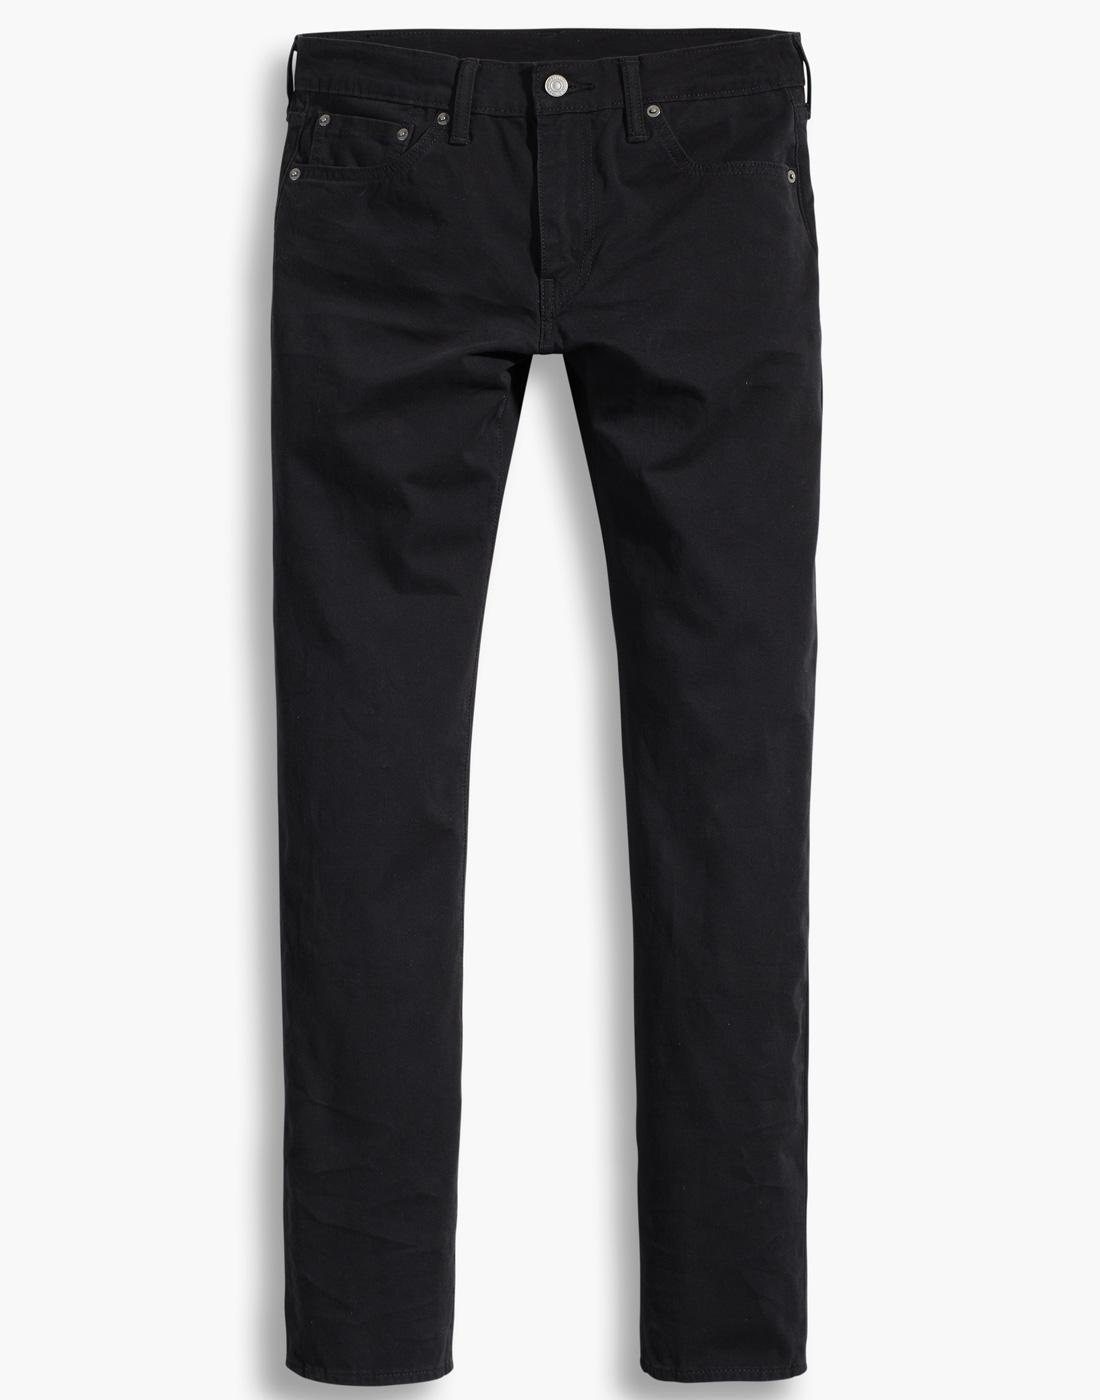 LEVI'S 511 Retro Mod Slim Fit Chinos MINERAL BLACK